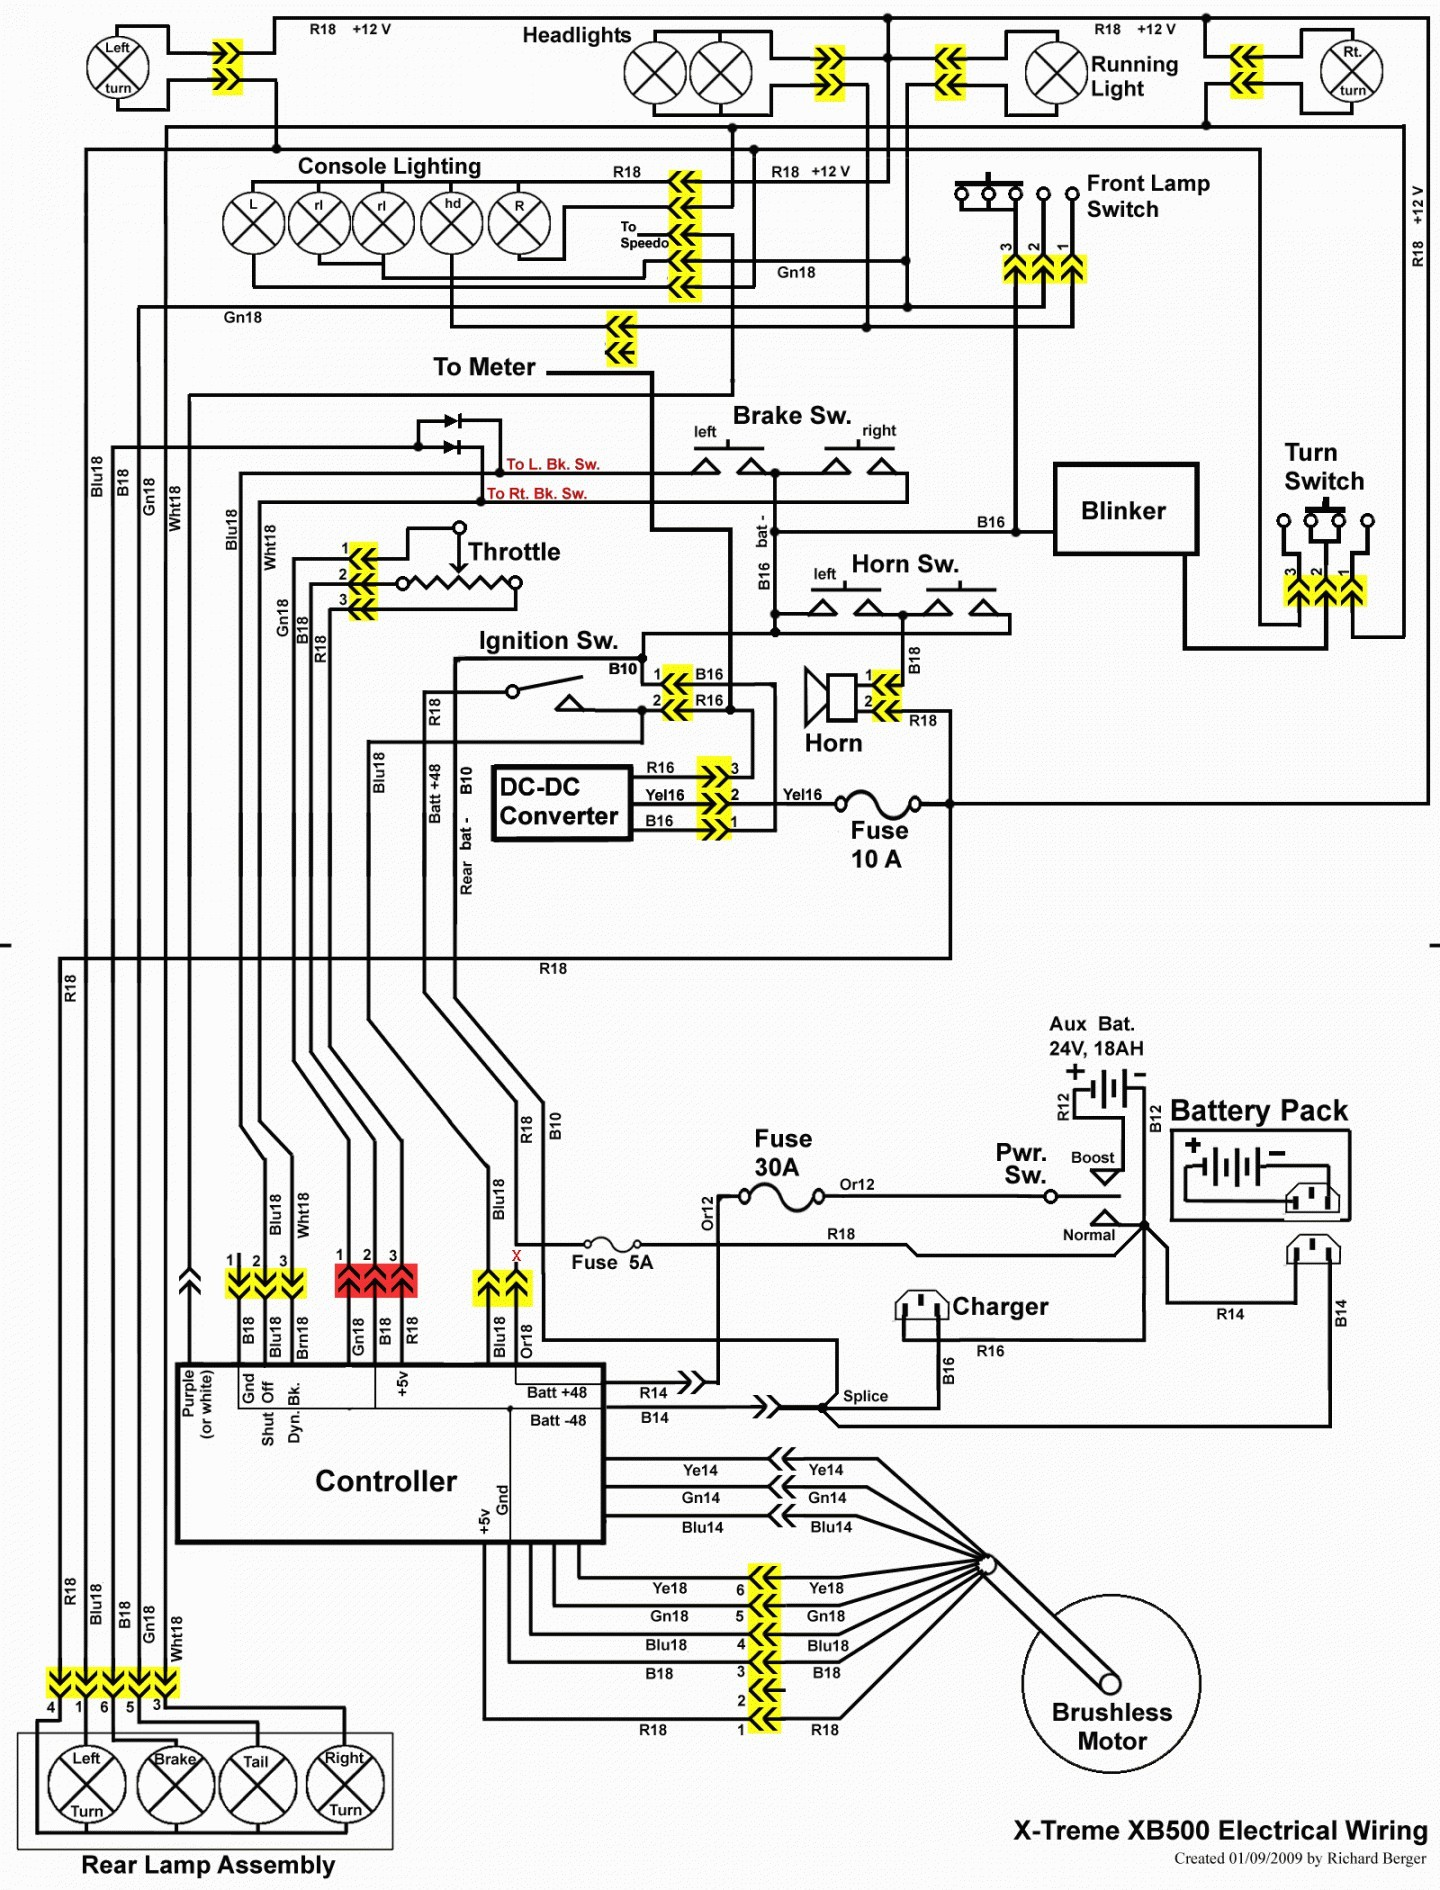 Peace Scooter Wiring Diagram | Wiring Diagram Technic on 70v speaker wiring diagram, 125v wiring diagram, 120vac wiring diagram, carrier air handler wiring diagram, 20v wiring diagram, minn kota 24 volt wiring diagram, bass tracker electrical wiring diagram, 24 volt relay wiring diagram, 72v wiring diagram, 11.1v wiring diagram, 36v wiring diagram, 24 volt thermostat wiring diagram, 24 volt starter wiring diagram, 24 volt alternator wiring diagram, 38v wiring diagram, 12 volt boat wiring diagram, light switch wiring diagram, 30a wiring diagram, 220vac wiring diagram, coleman air conditioning wiring diagram,